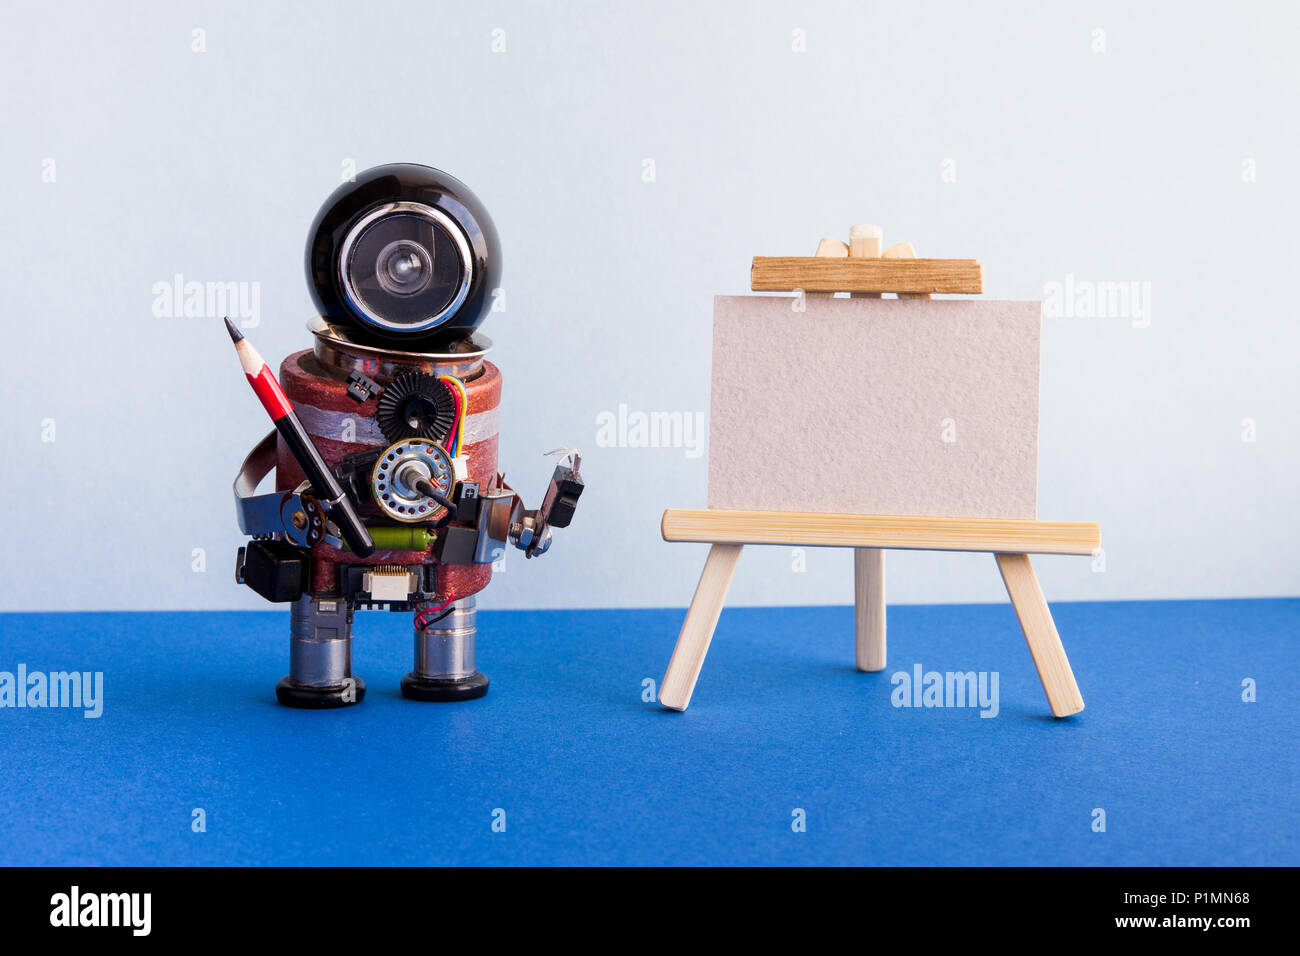 Kindly robot artist begins to create a drawing with a pencil. White paper template, wooden easel. Advertising poster studio school of visual arts. copy space. - Stock Image